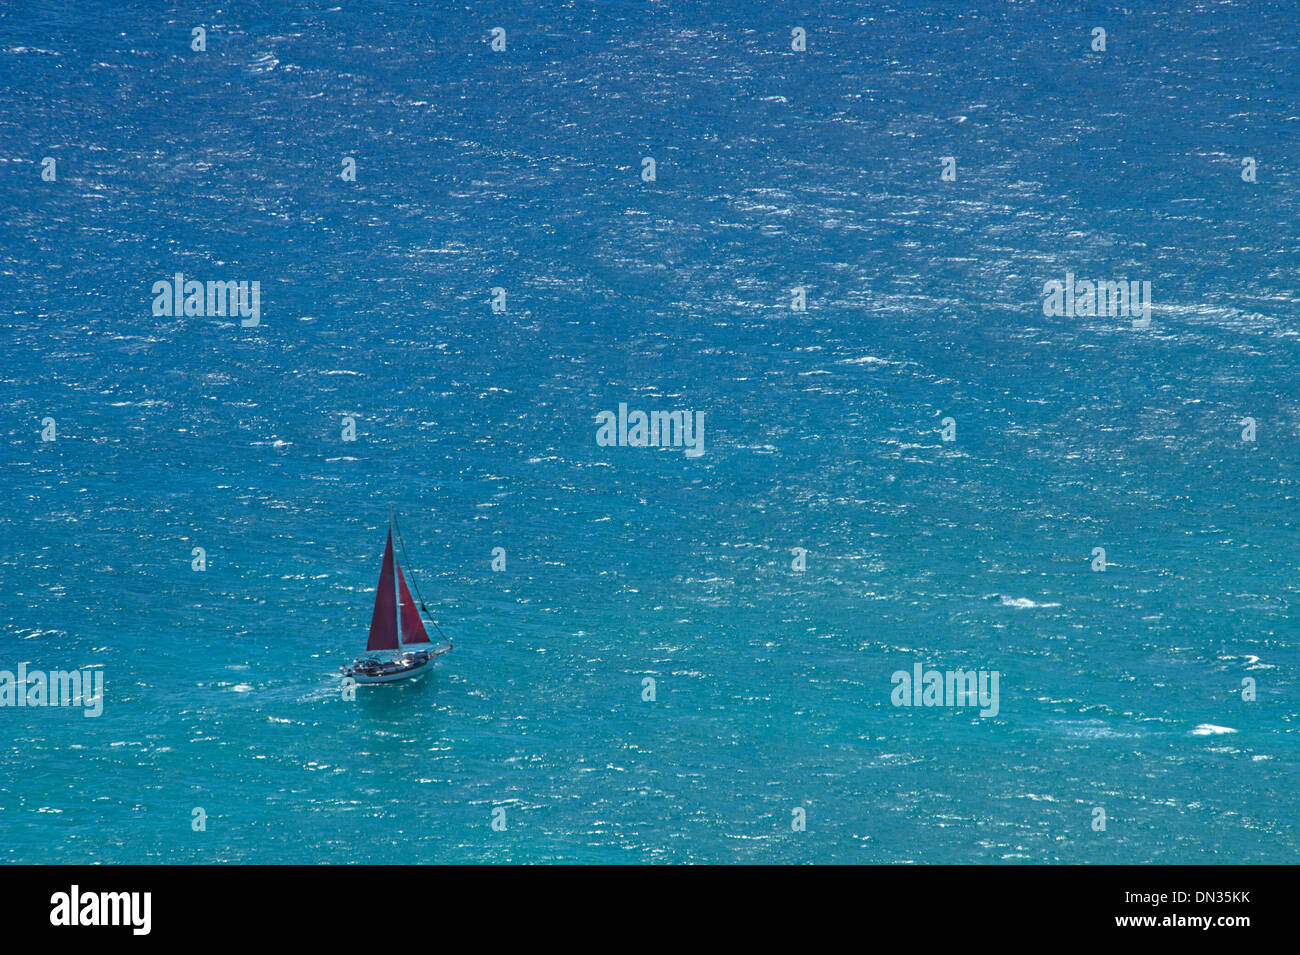 Small yacht sailing in open ocean - Stock Image